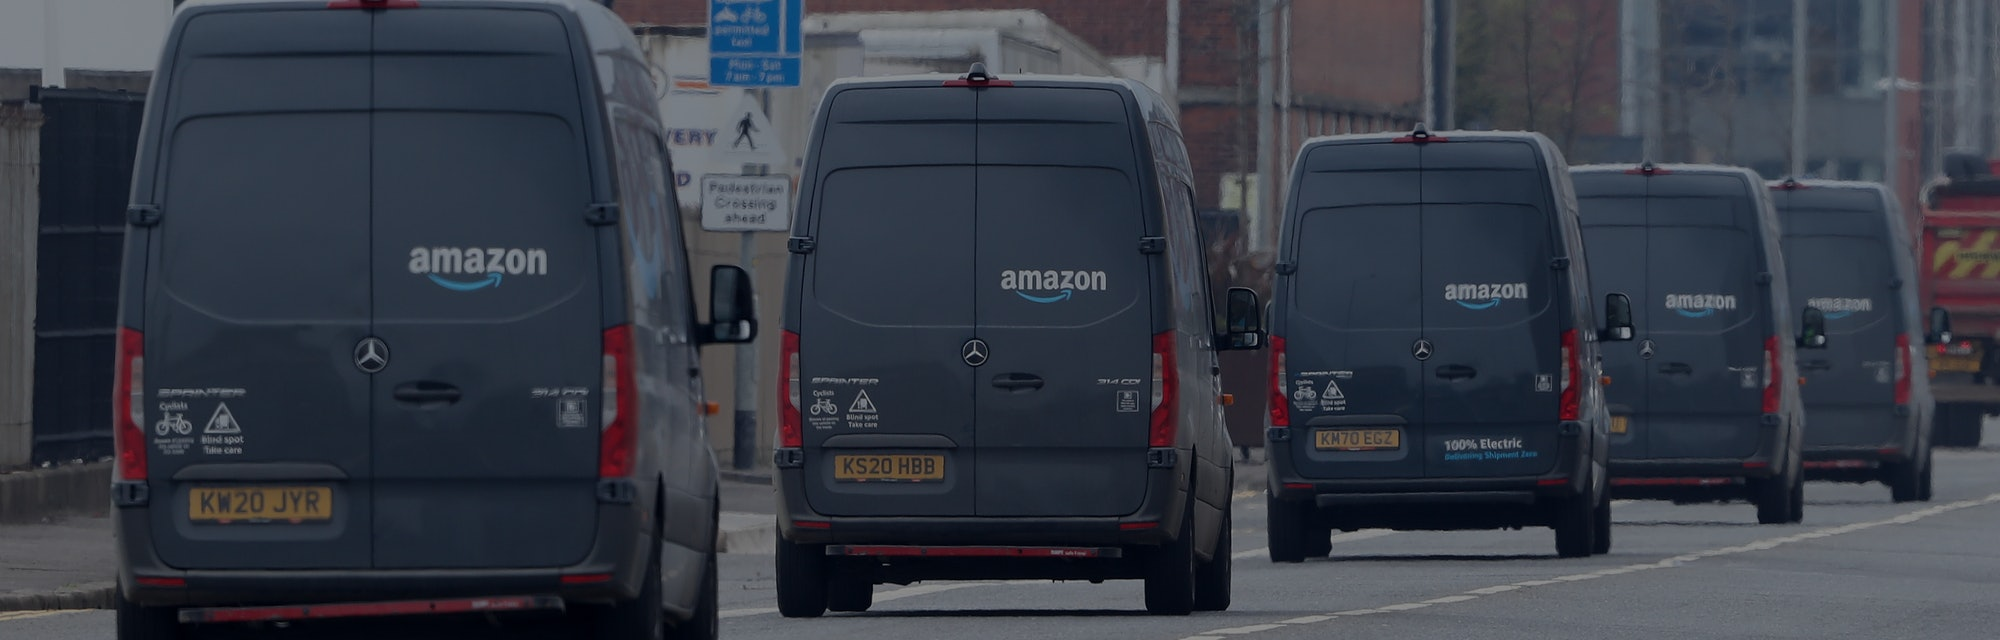 Electric delivery vans leave the Amazon warehouse in the Titanic Quarter, Belfast. Picture date: Wed...